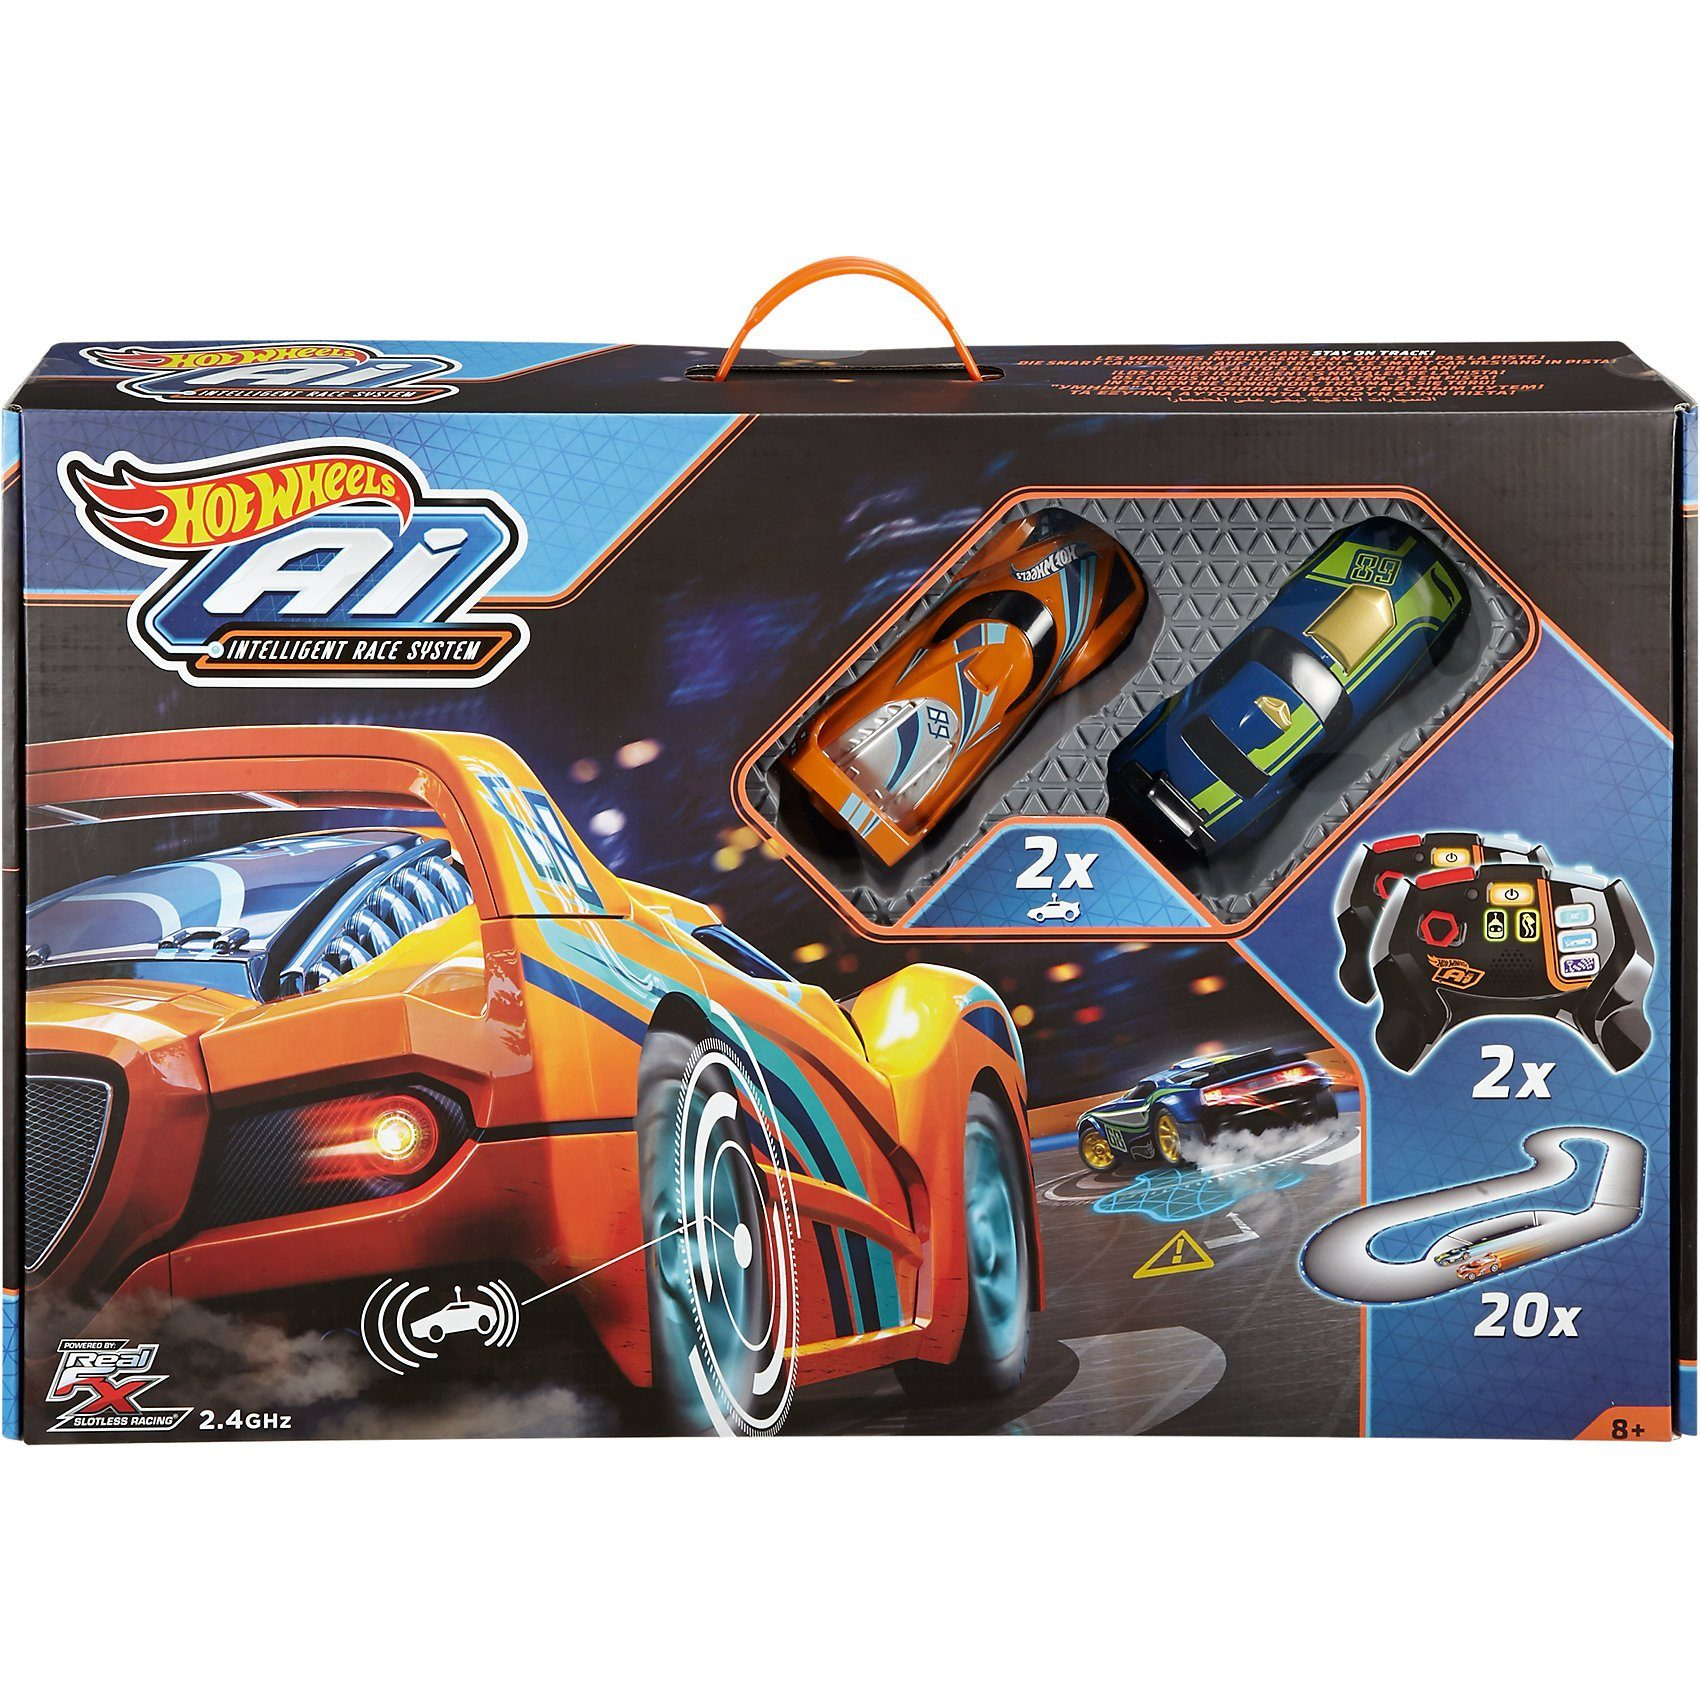 Mattel® Hot Wheels A.I. - Intelligent Race System